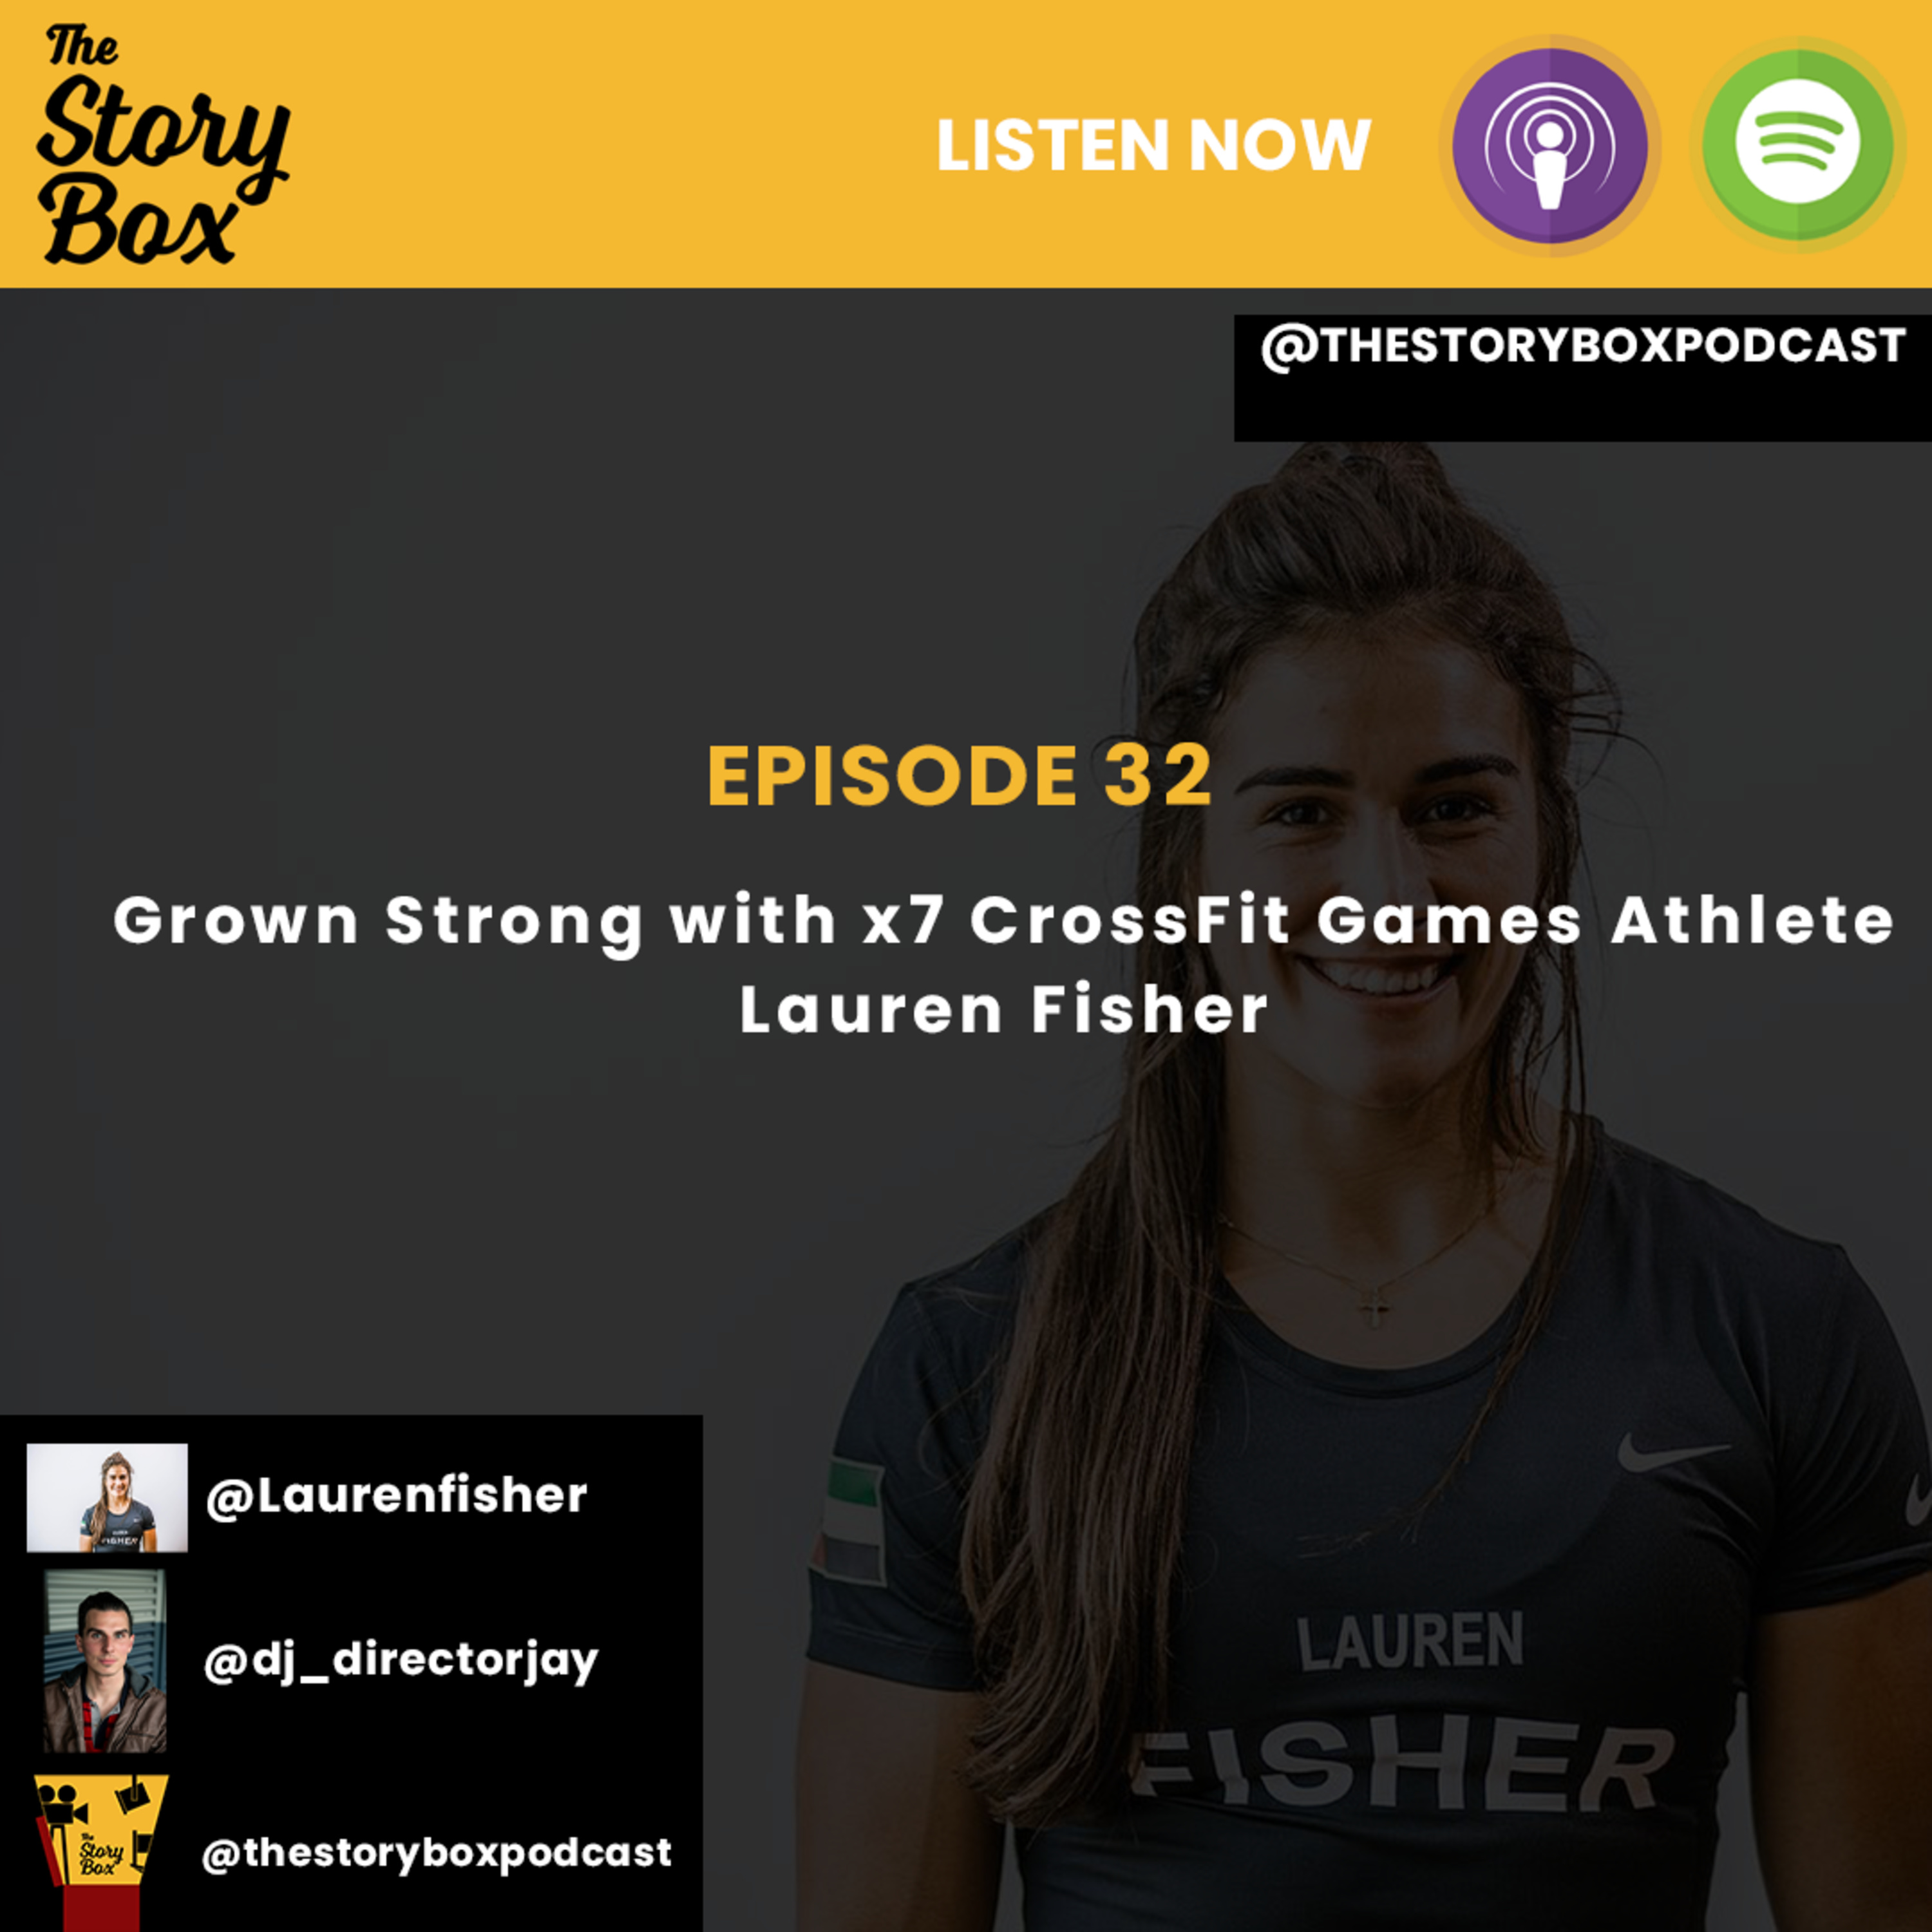 Episode 32 - Grown Strong with x7 CrossFit Games Athlete Lauren Fisher